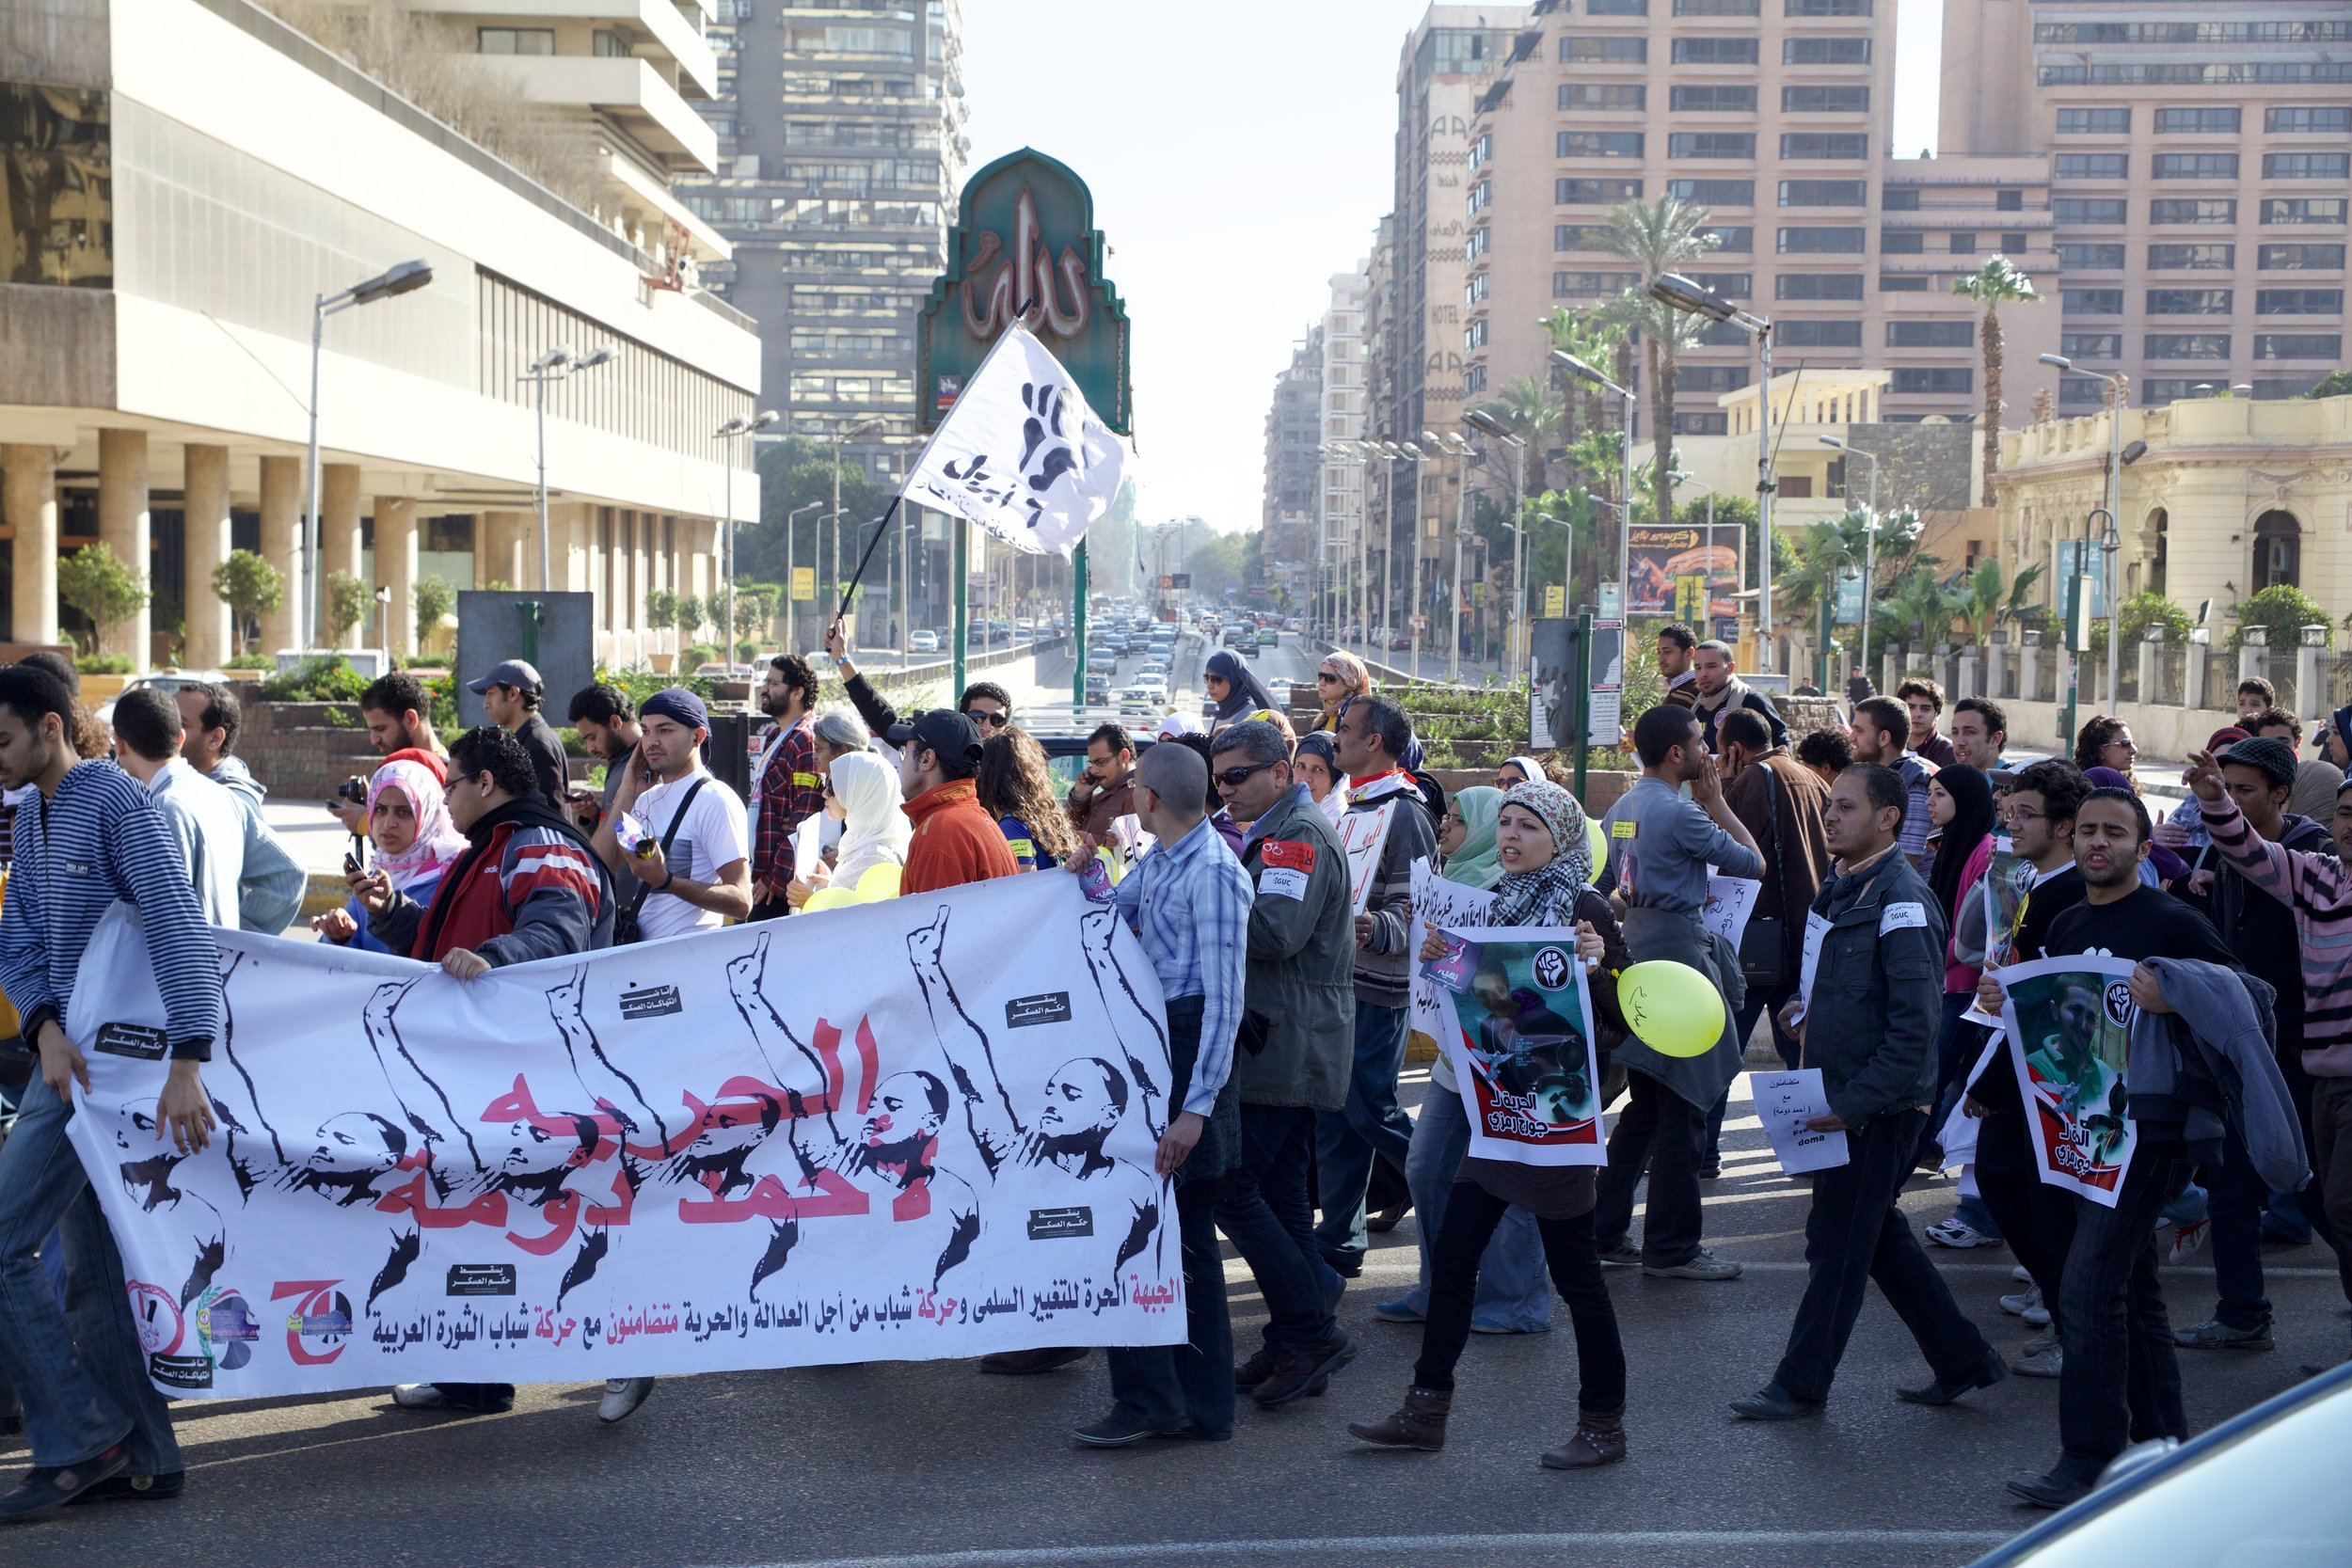 Protesters march through the Dokki neighborhood of Cairo.